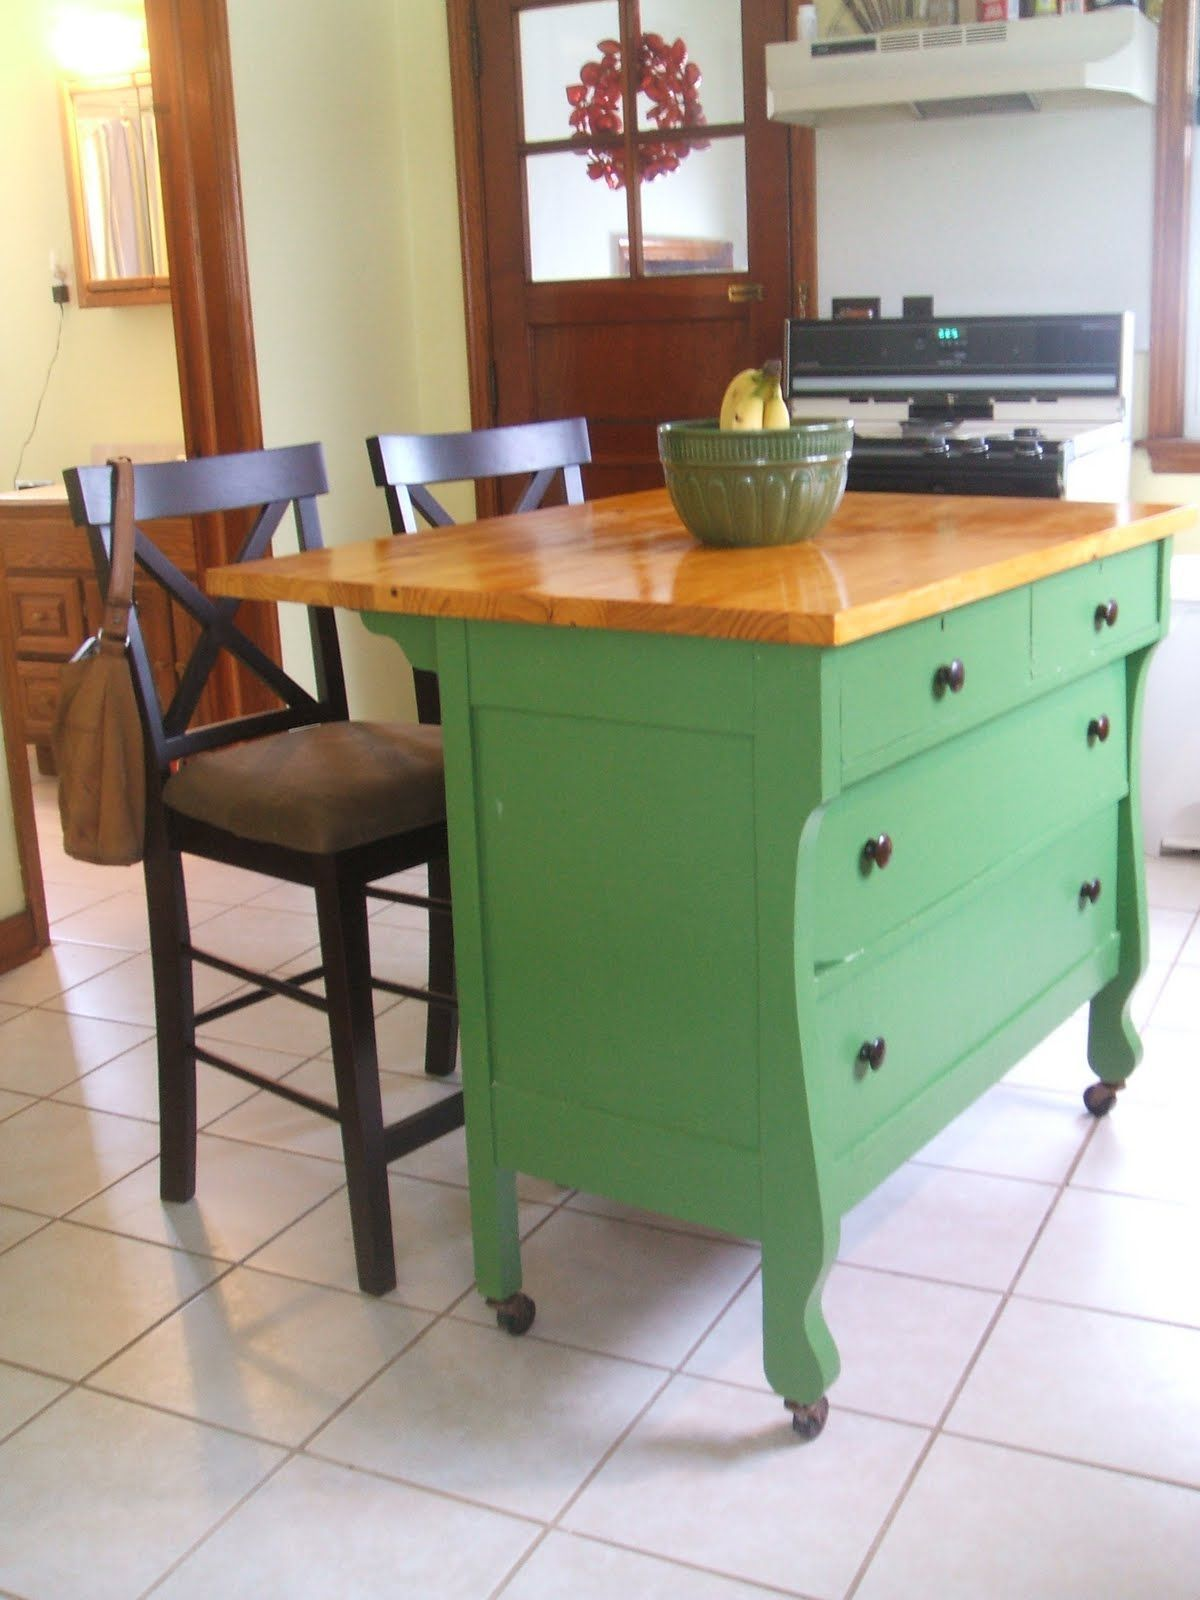 kitchen small and portable kitchen island ideas diy cute and green kitchen island idea